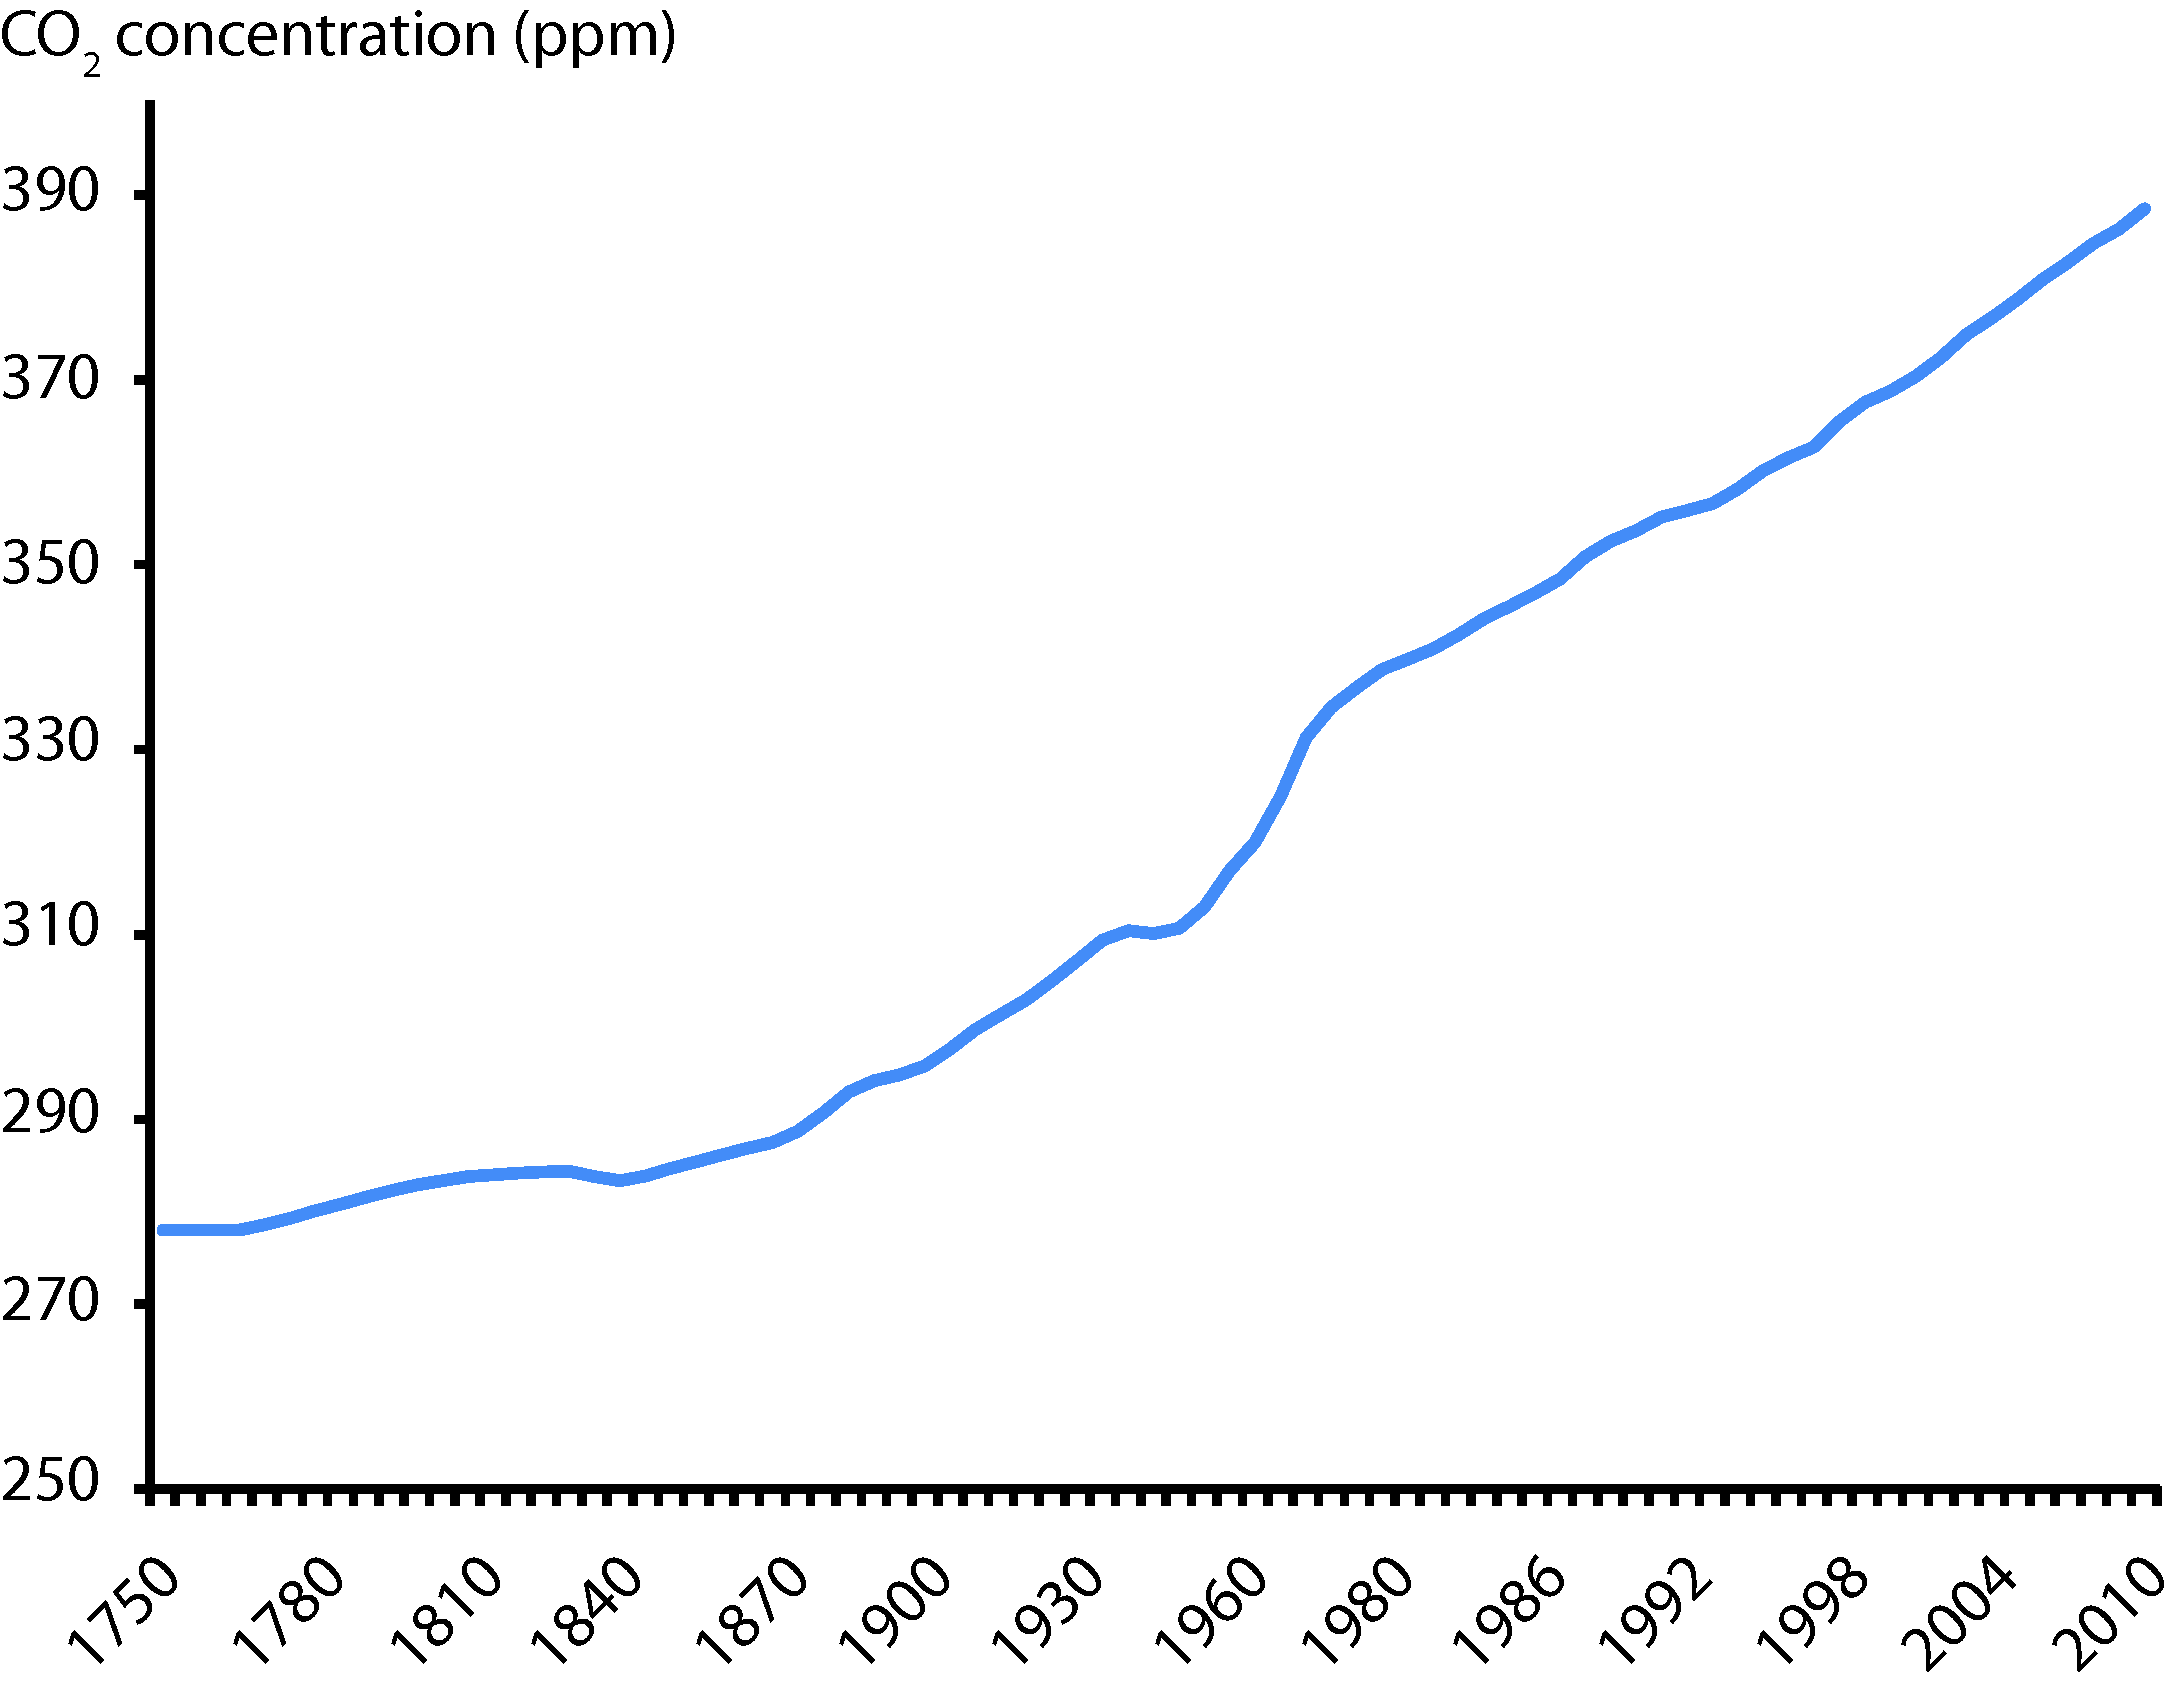 Atmospheric concentration of CO2 (ppm)